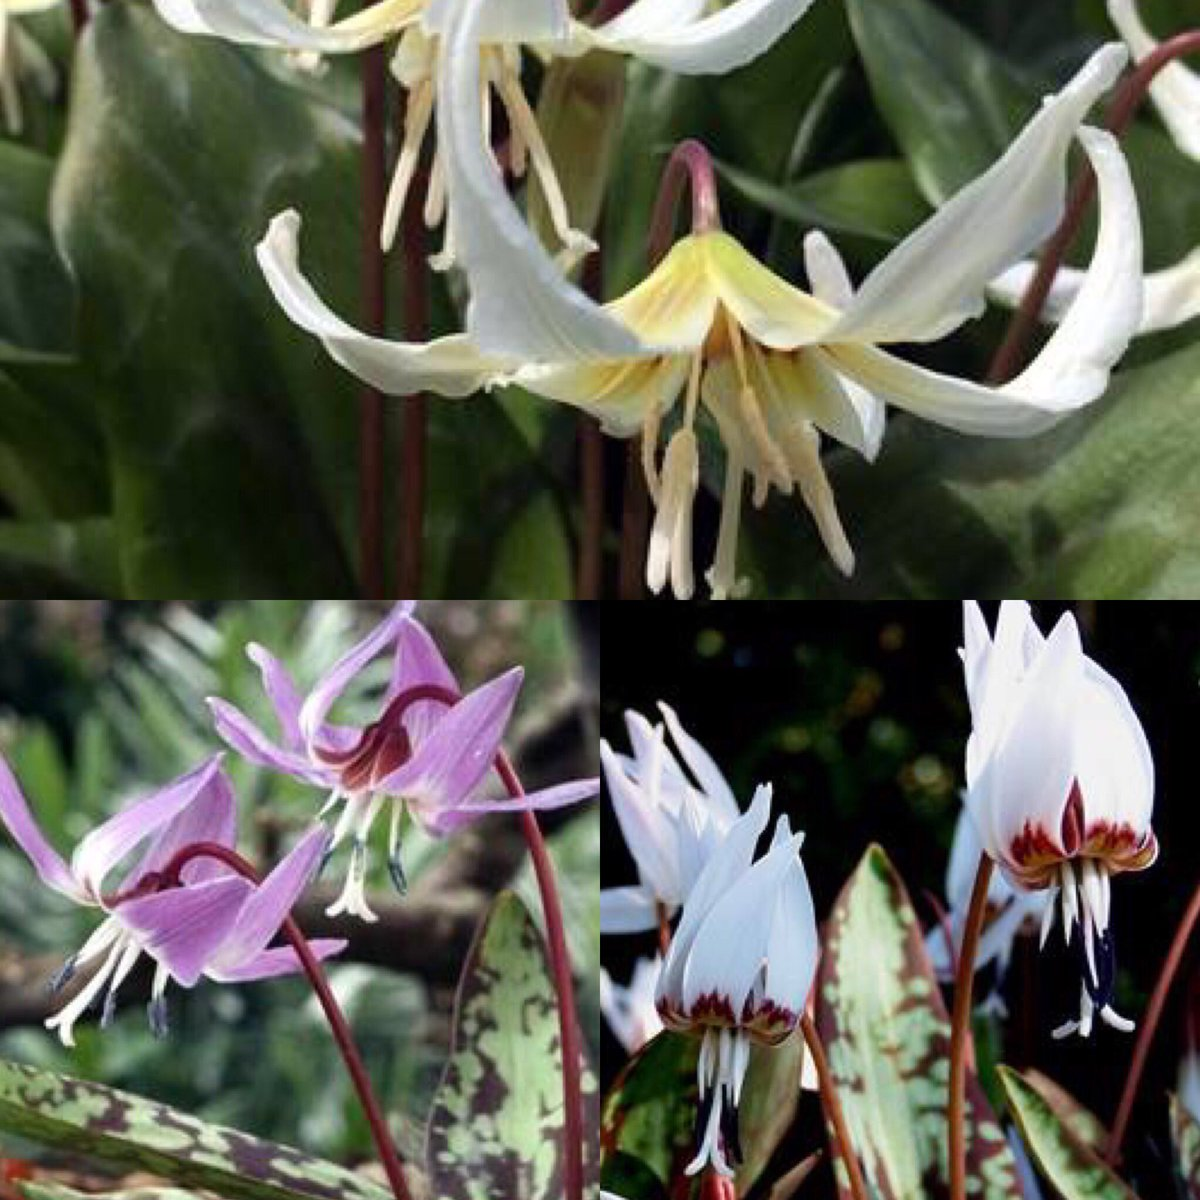 Phoenix perennials on twitter order rare bulbs now erythronium erythronium have nodding lily like flowers plant w hostas and toadlilies springbulbs garden bulbs fawnlily httpstvlzklbtw33 izmirmasajfo Image collections